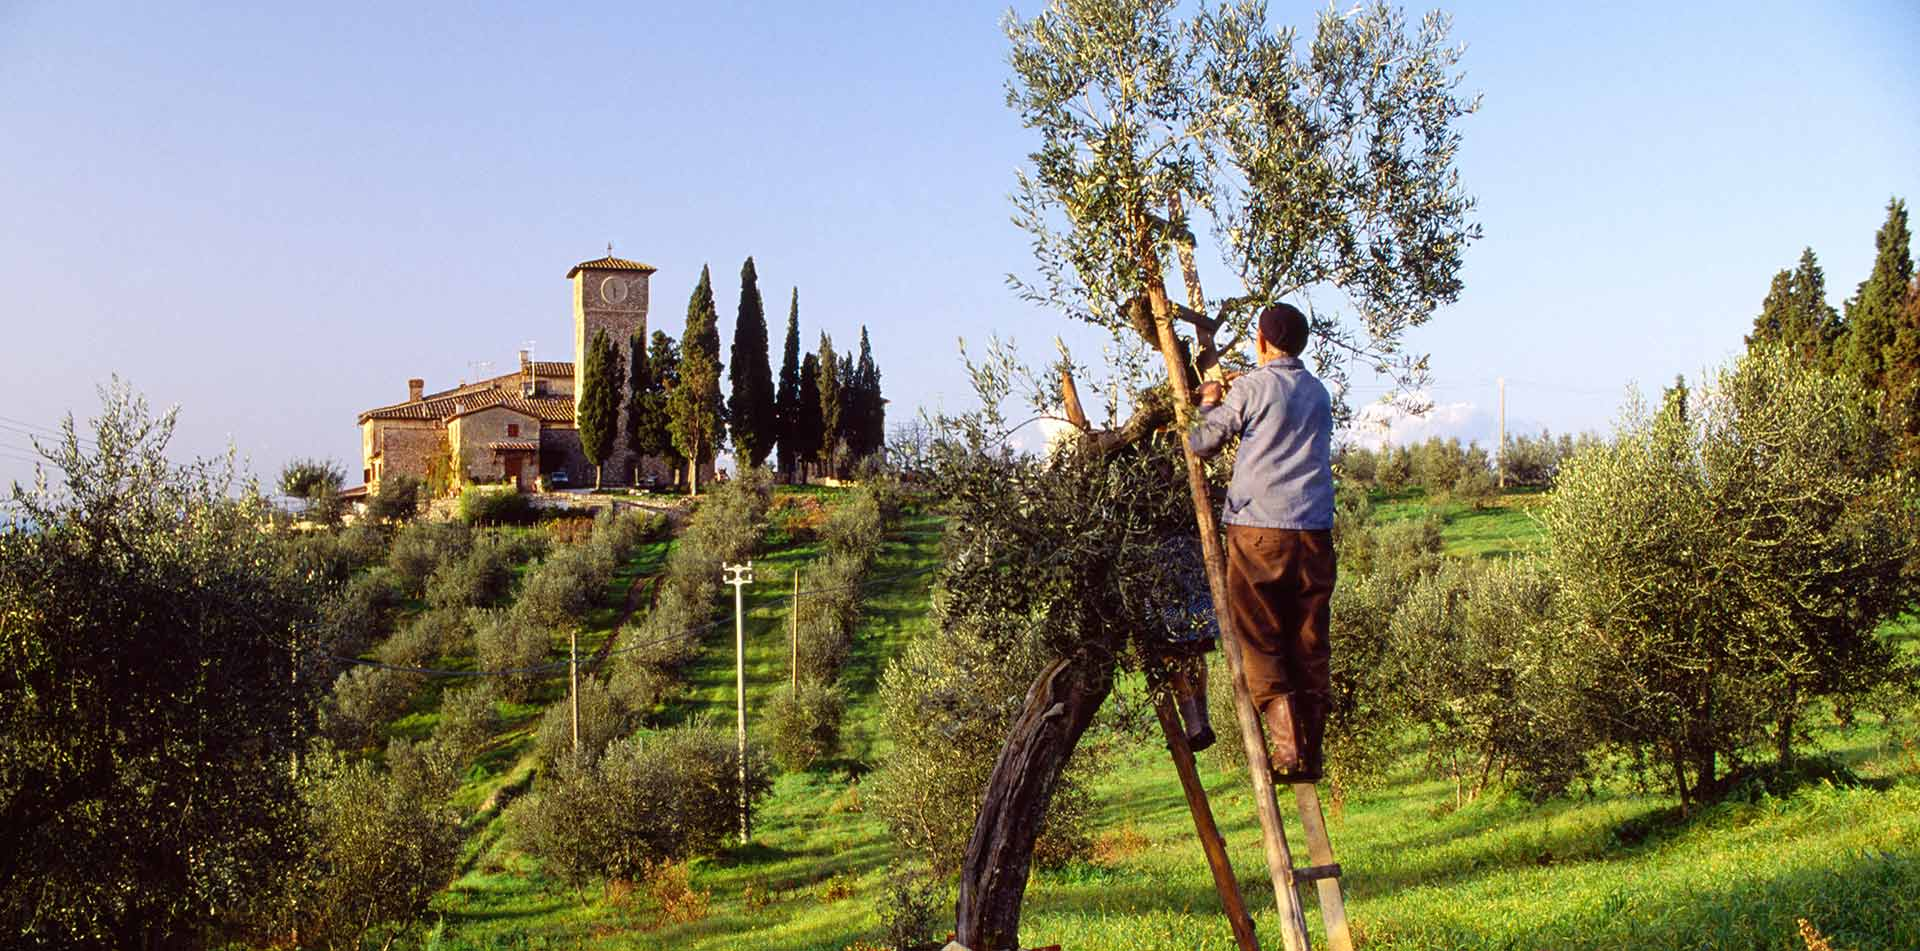 Europe Italy Tuscany man on ladder harvesting olives off tree in Tuscan grove - luxury vacation destinations